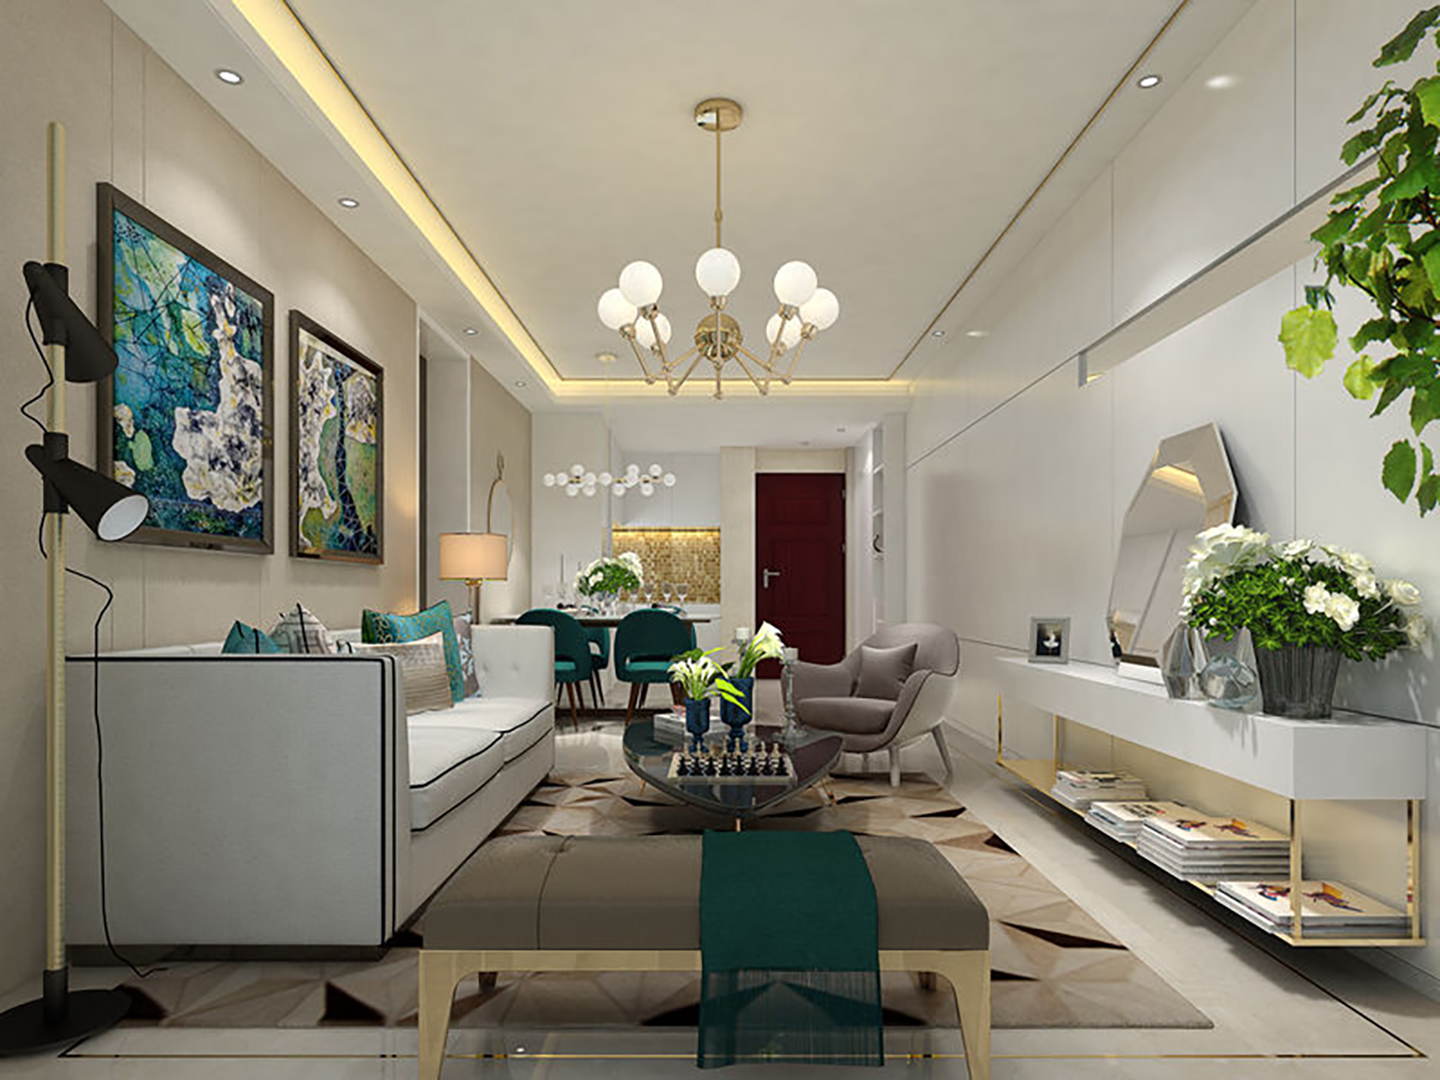 92-3-model-house-interior-design-of-qingdao-international-coast